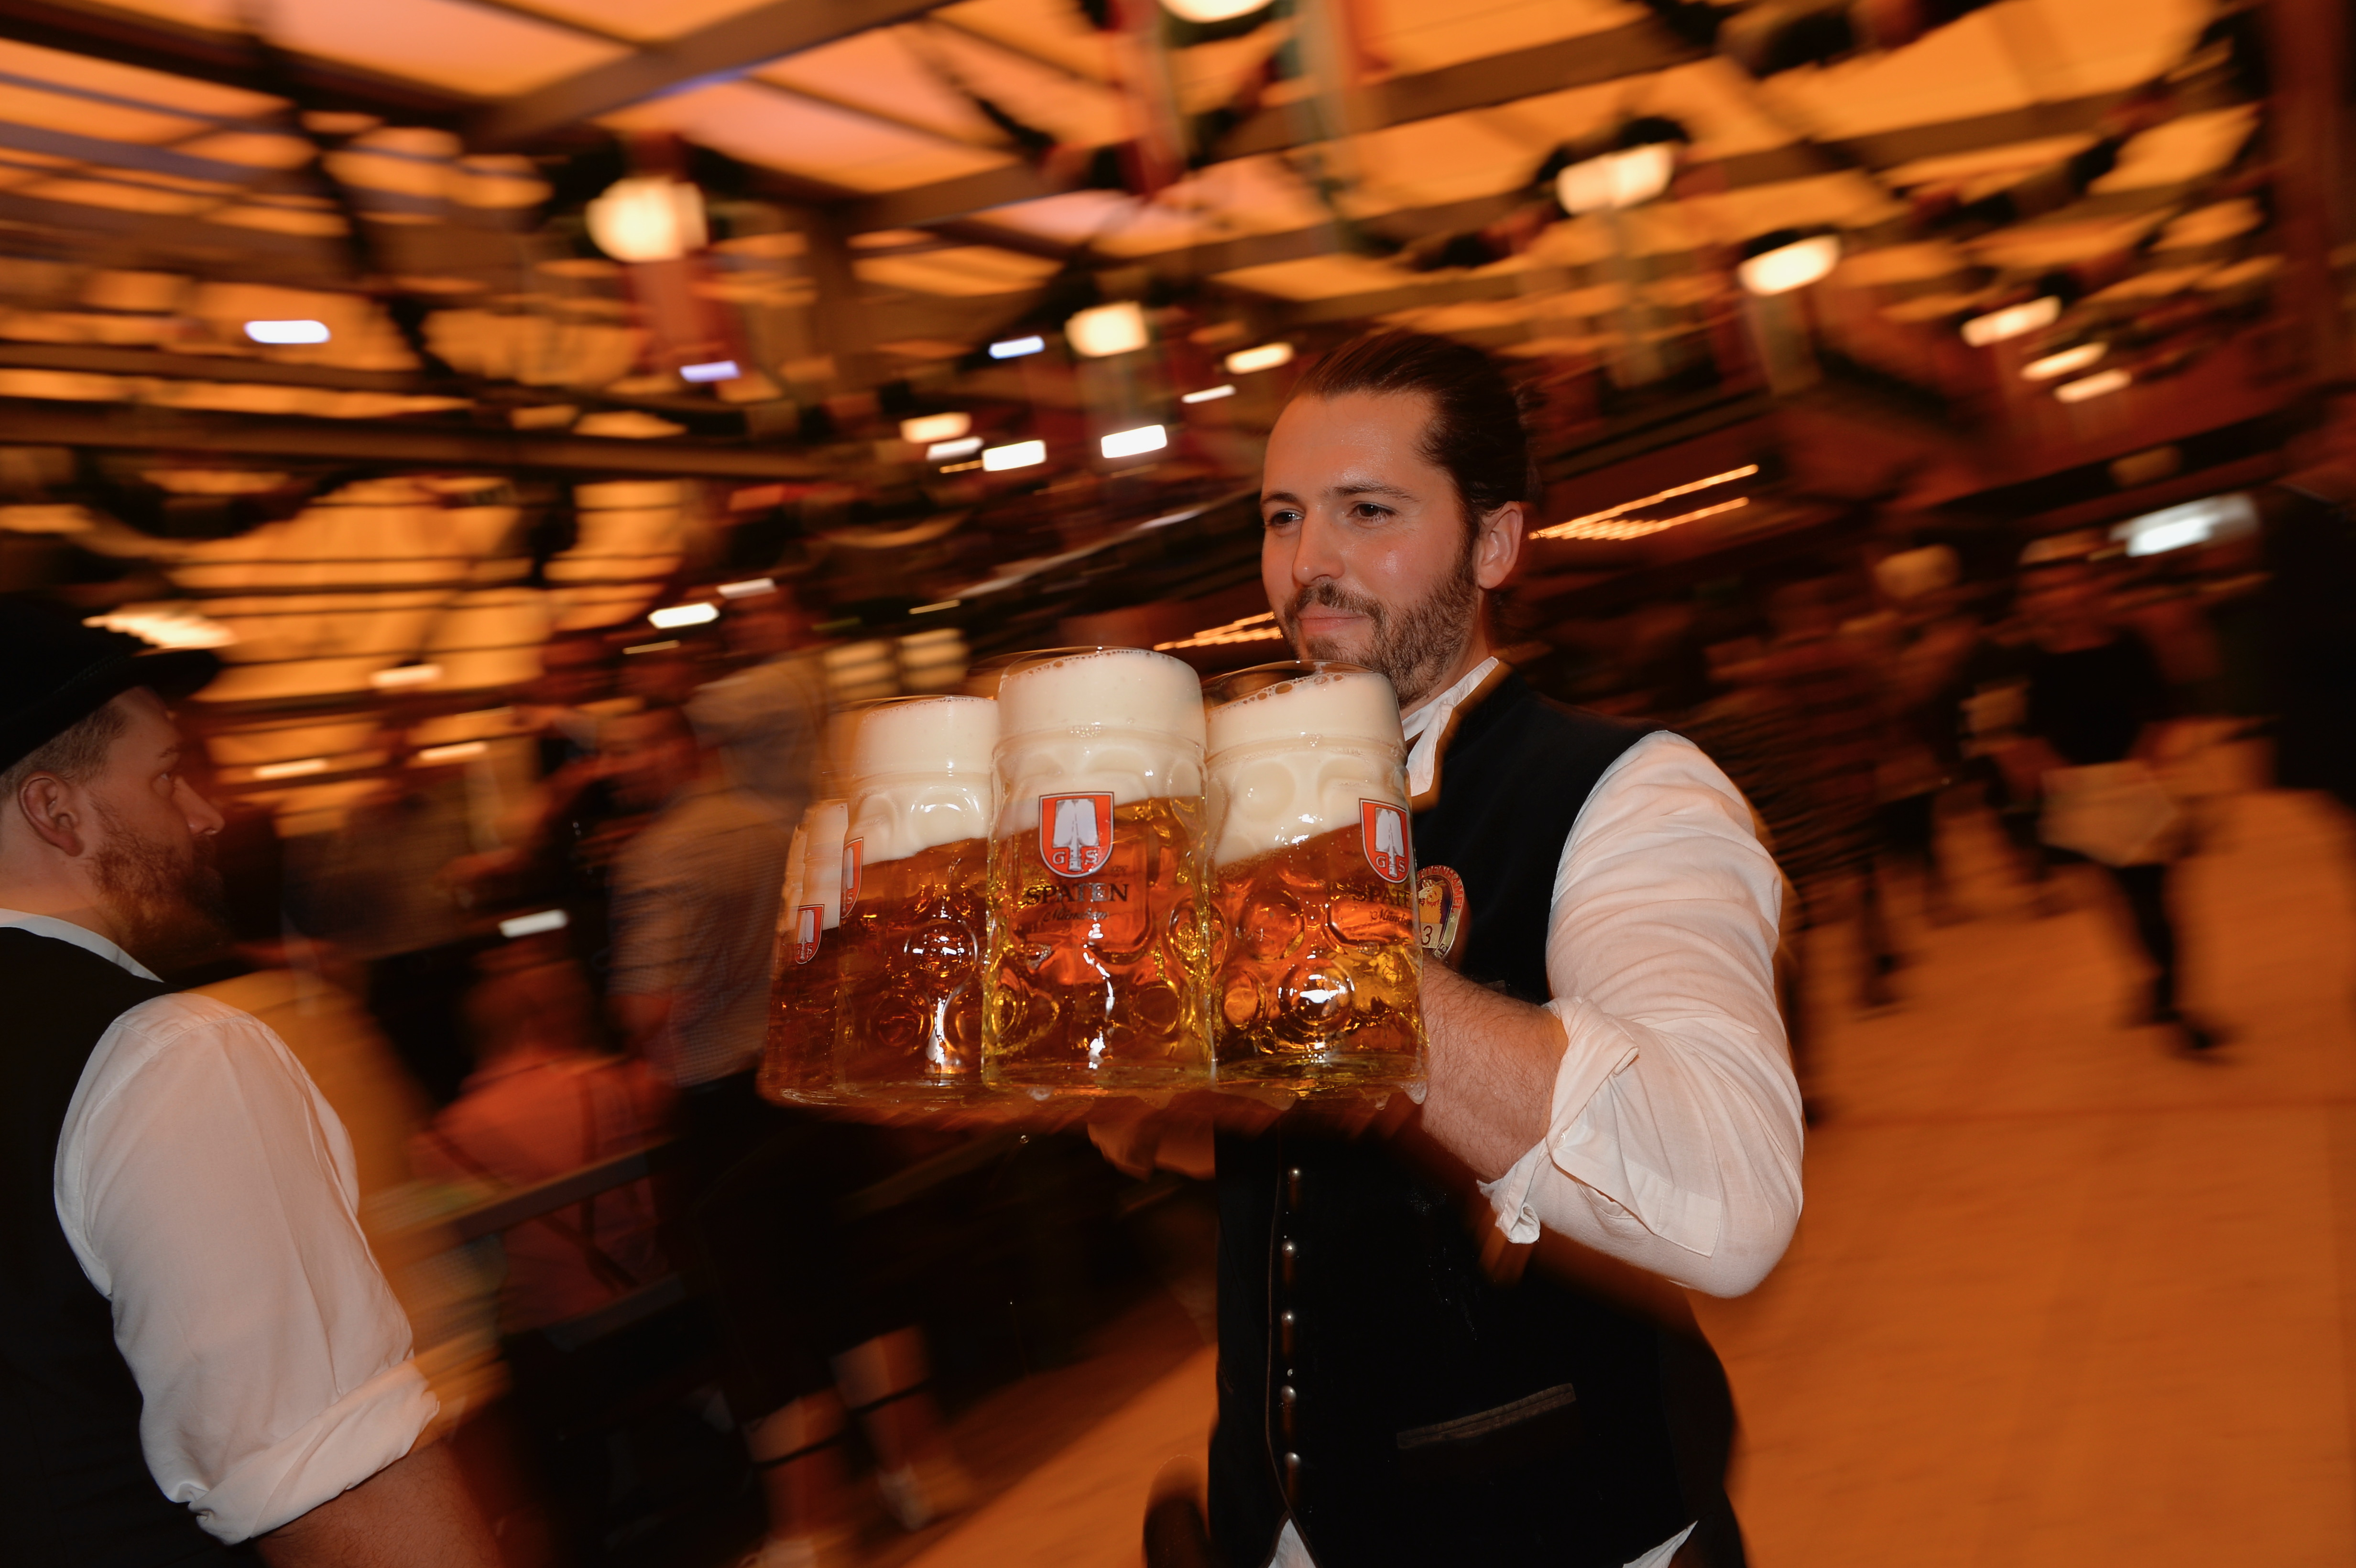 A waiter serves beer mugs after the official opening of the 184th Oktoberfest, Munich's annual beer festival, on September 16, 2017 in Munich, southern Germany. (Photo credit GUENTER SCHIFFMANN/AFP/Getty Images)